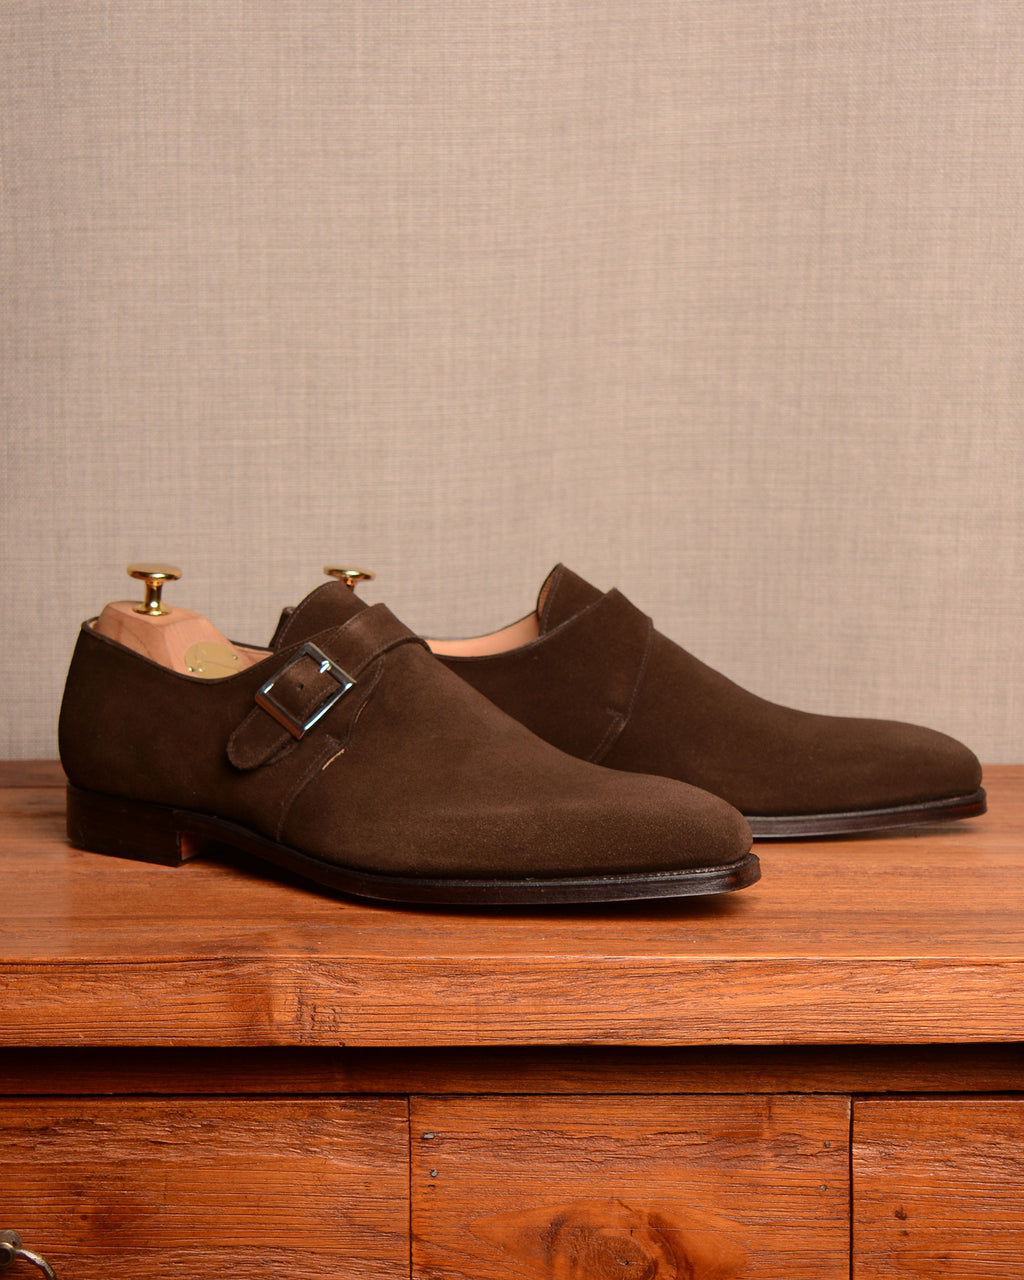 Crockett & Jones Monkton - Espresso Suede